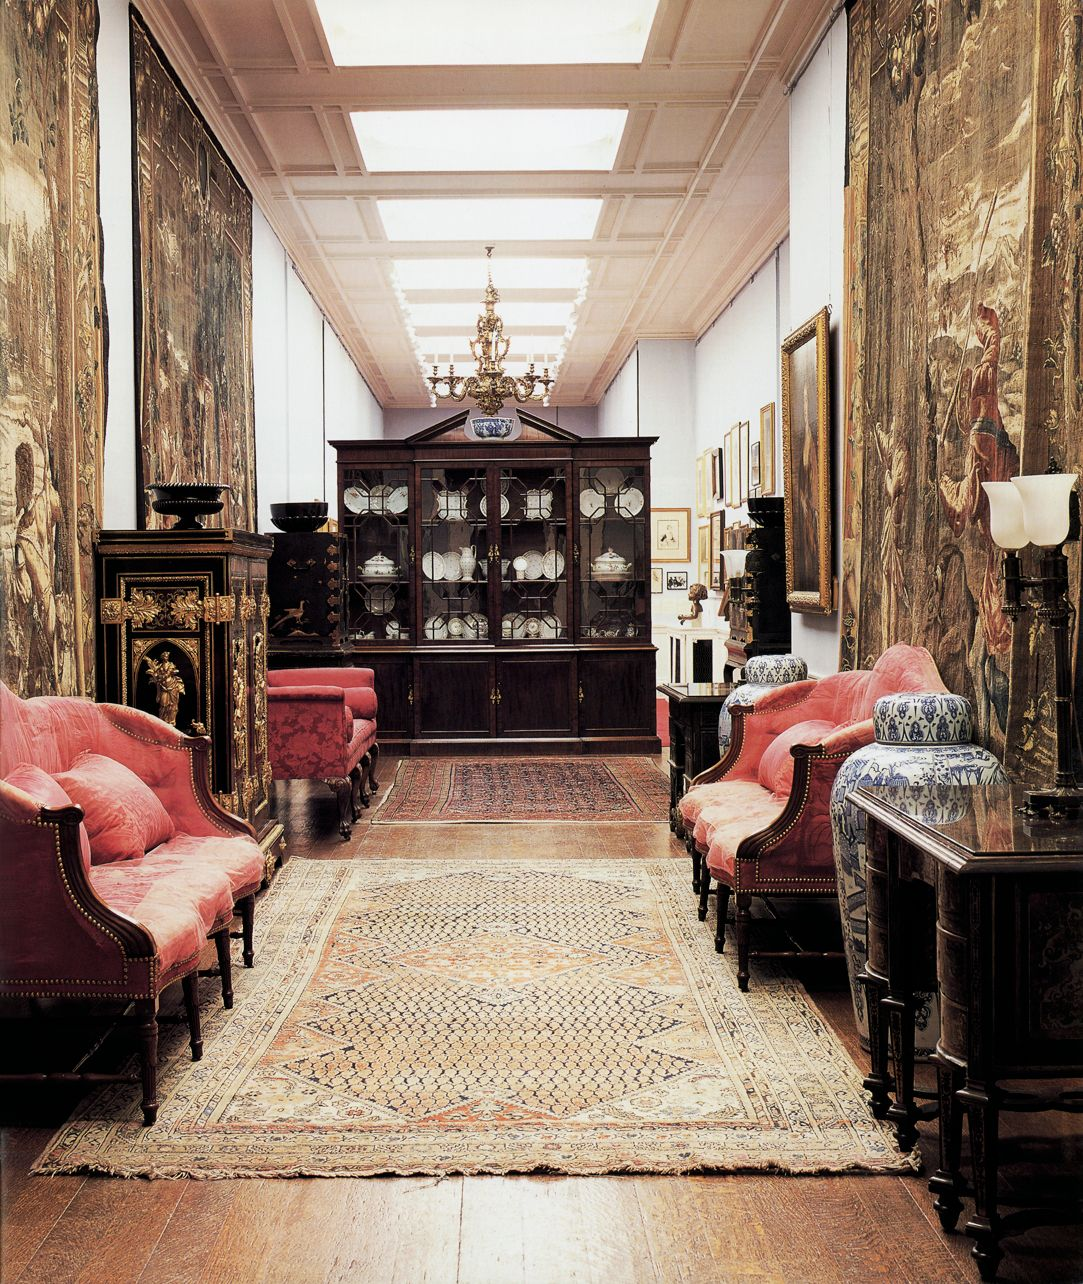 Patrickhumphreys   the south sketch gallery at chatsworth photo by simon upton   also rh pinterest